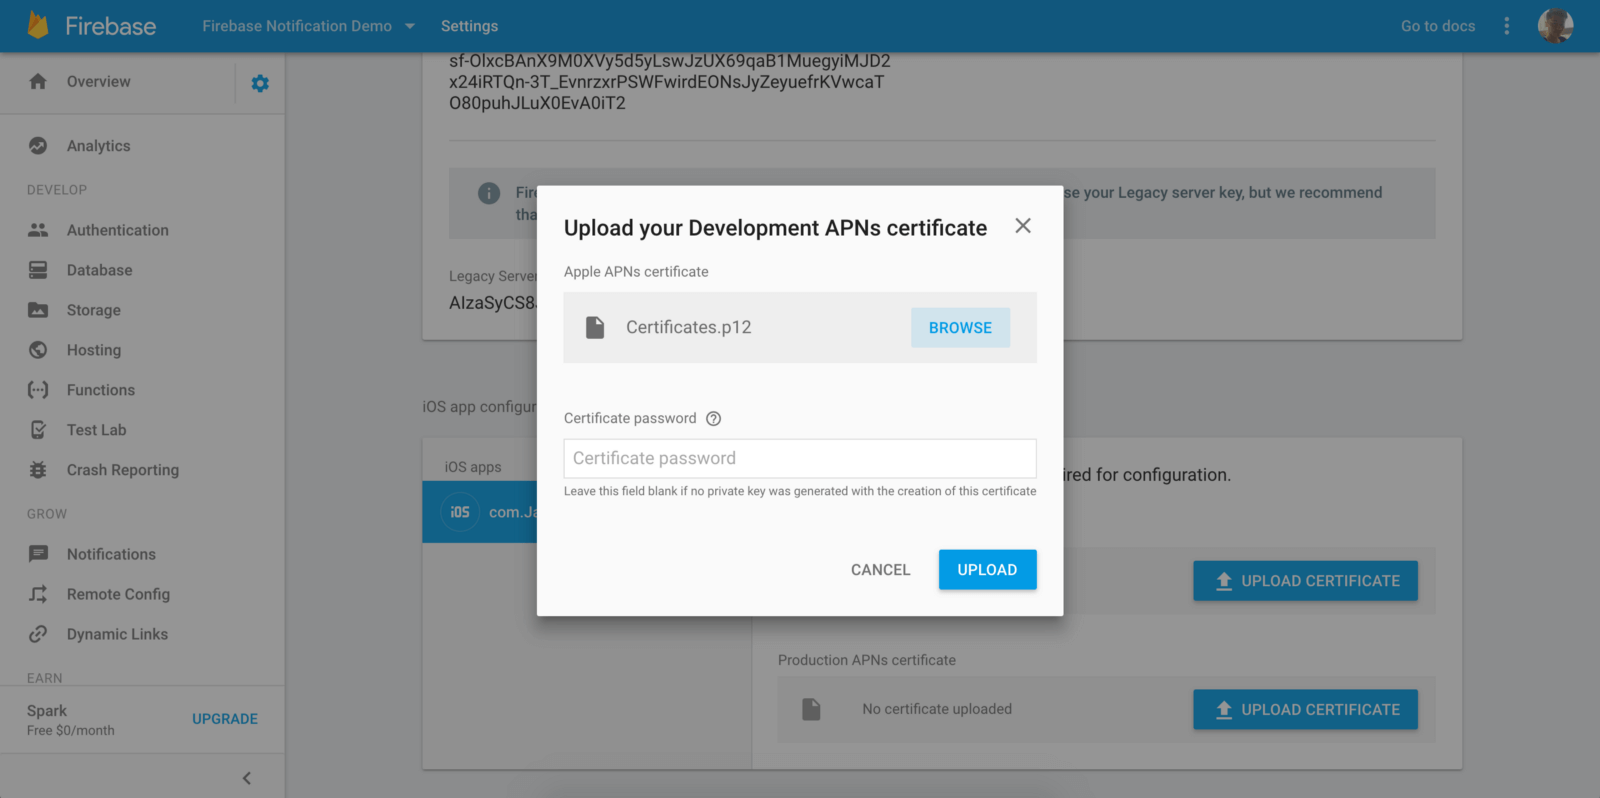 apns-export-cert-upload